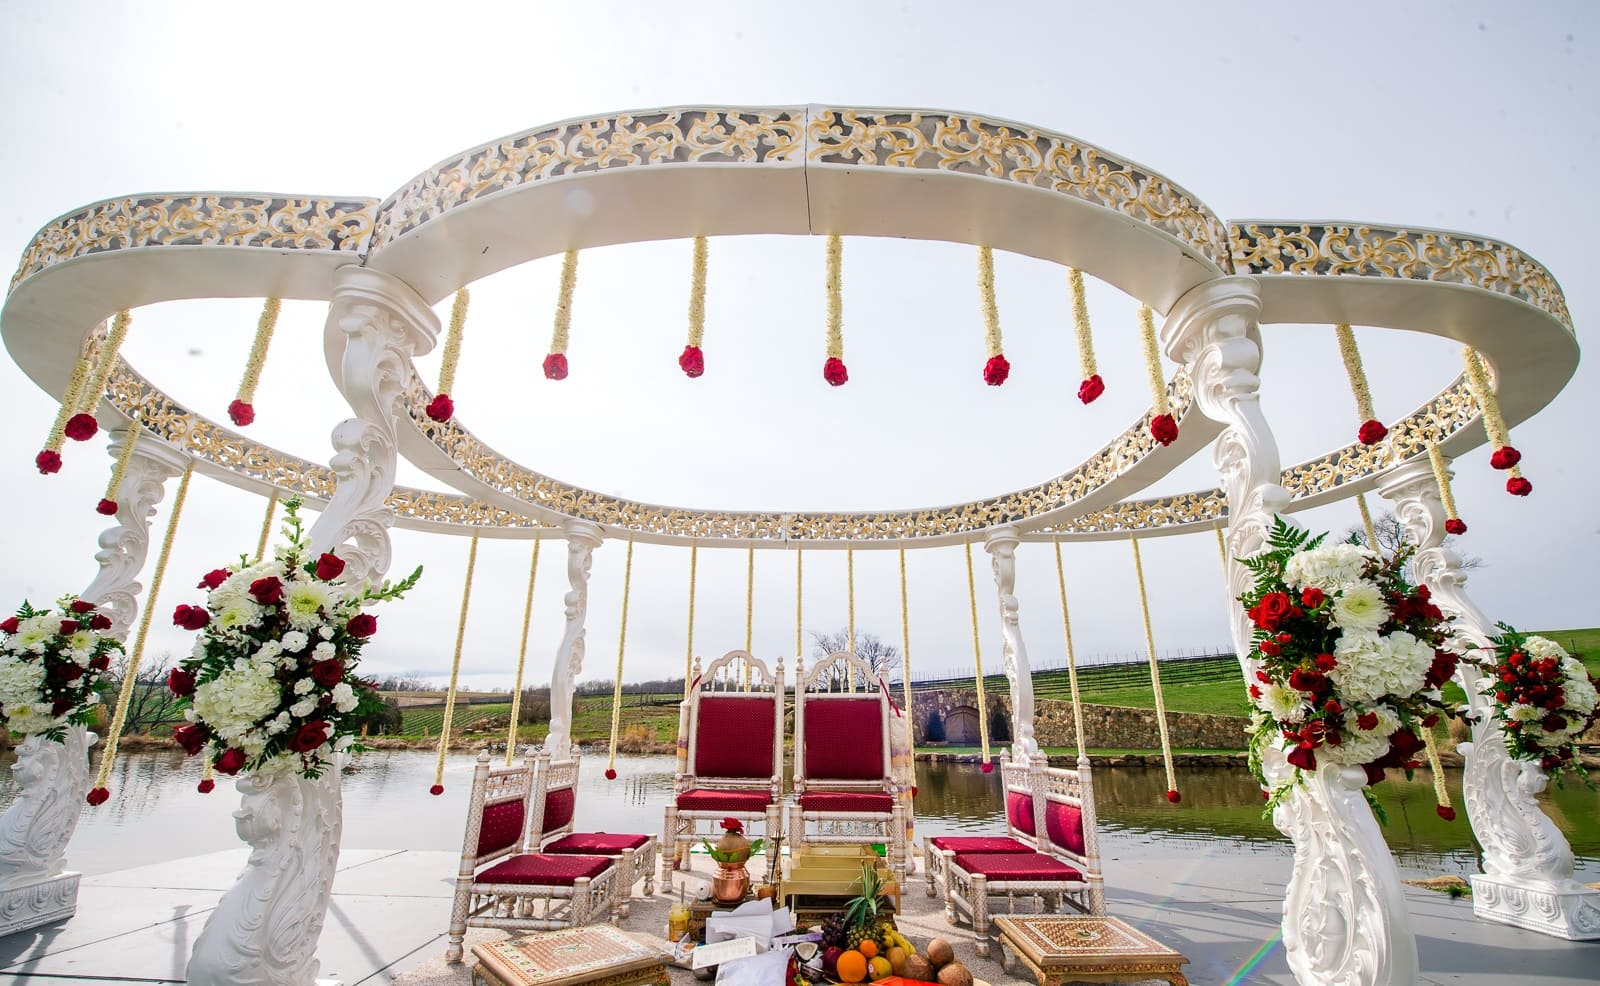 Daytime Wedding Decoration Ideas | From Venue Entrance to Stage ...